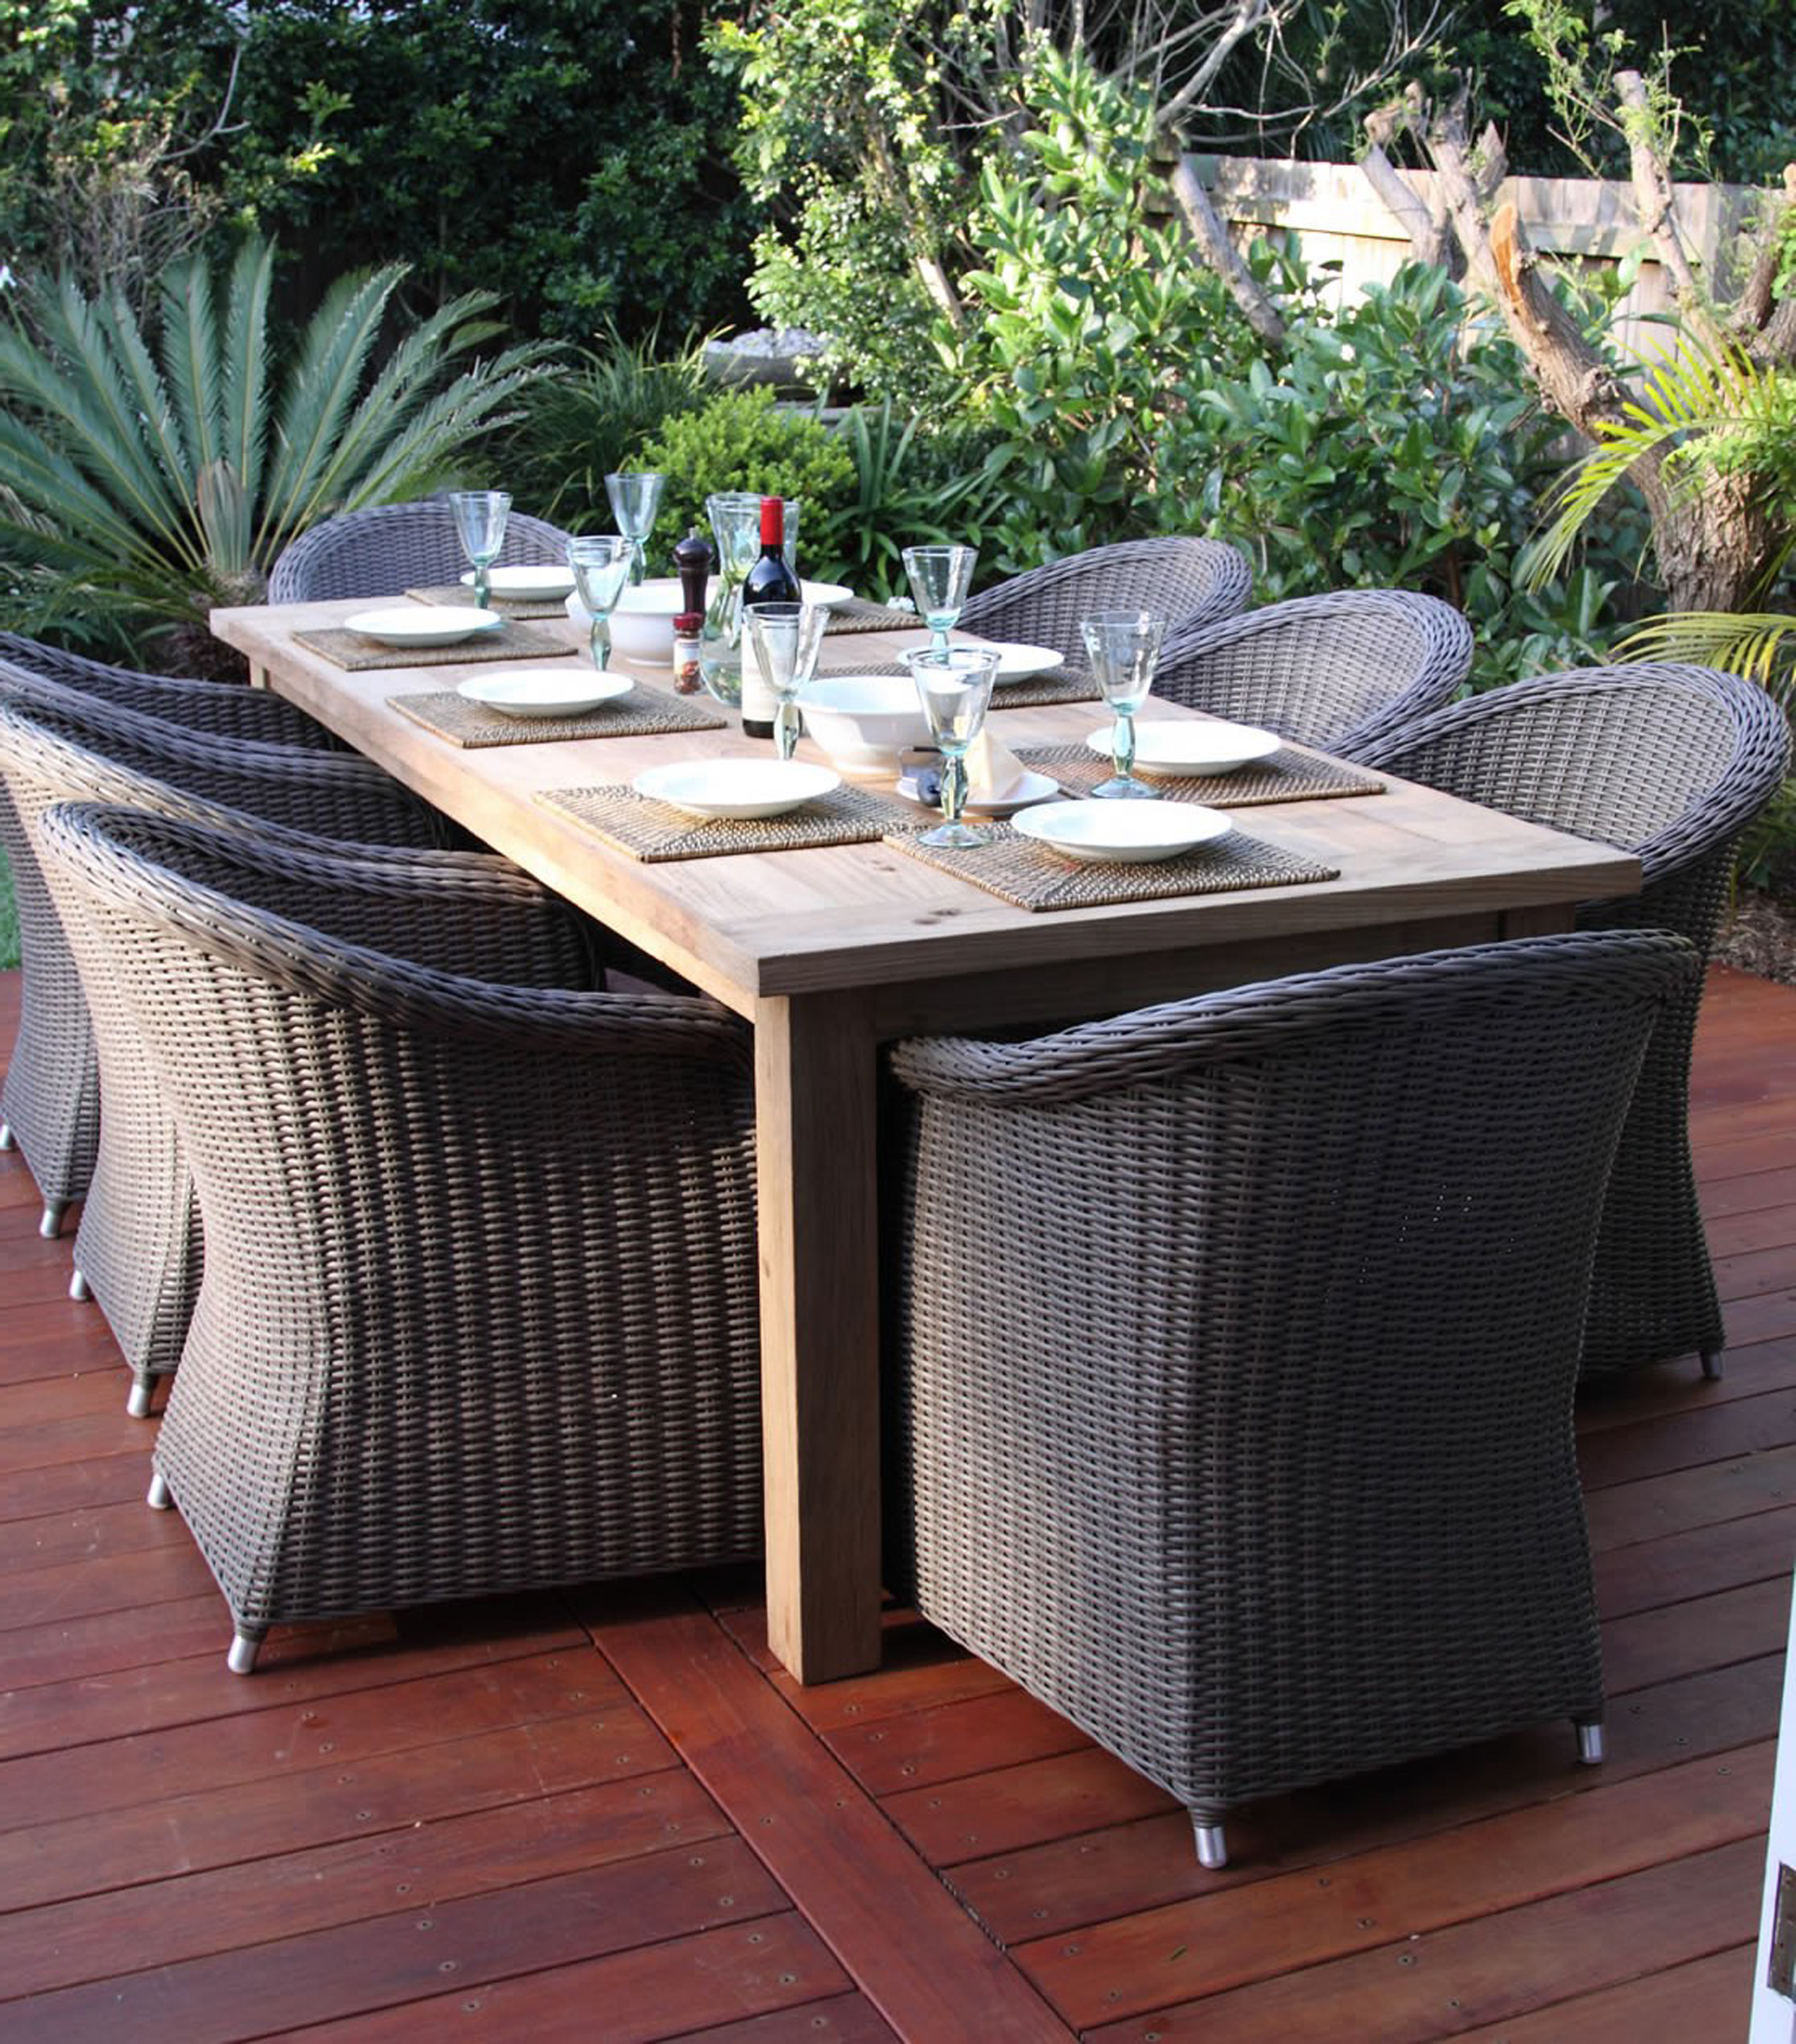 Attractive Outdoor Modern Wicker Design Idea With Brown Dining Table And Gray Wicker Armchairs Attractive Outdoor Modern Wicker Design Ideas (Image 3 of 28)